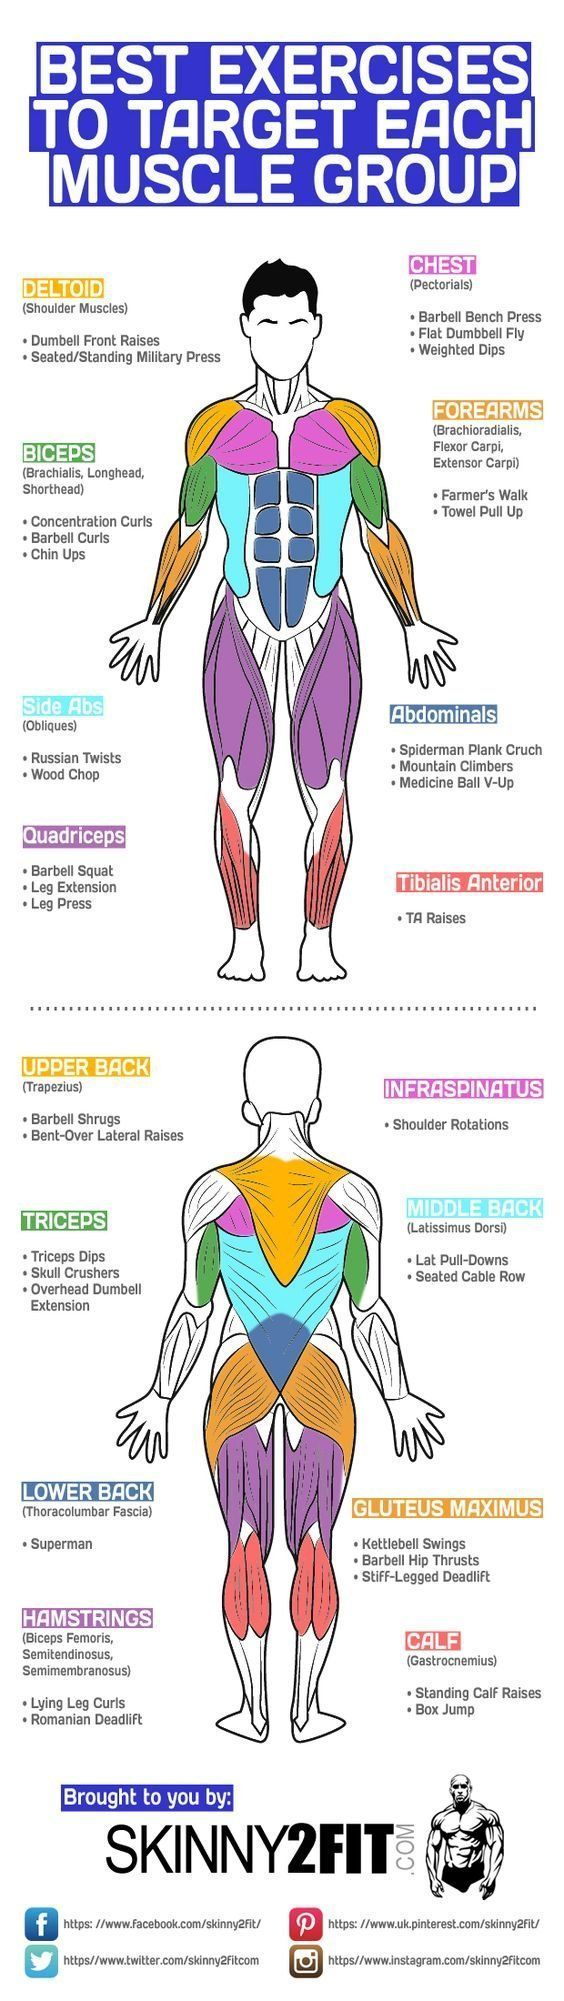 Best Exercises to Target Each Muscle Group